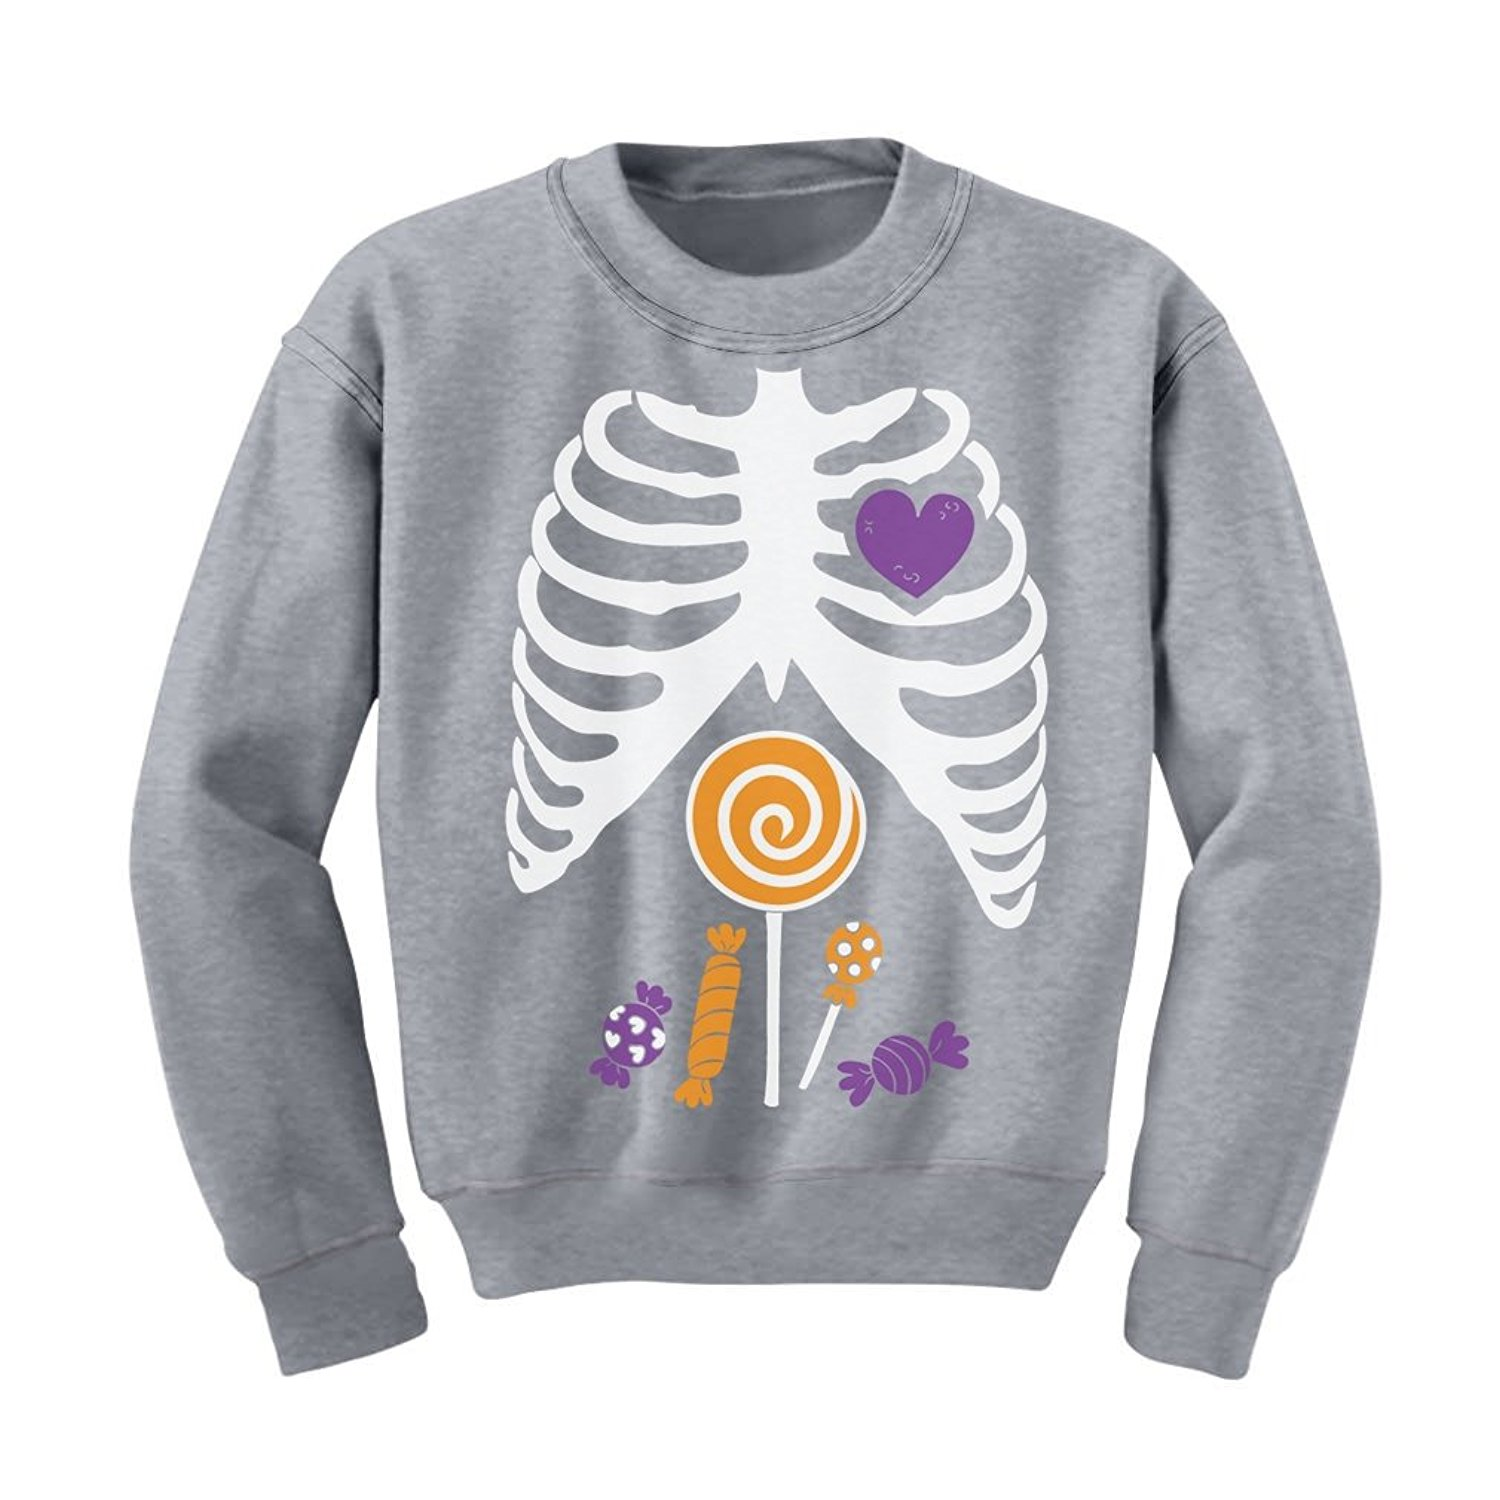 8158bf68ea Tstars Children Candy Rib-Cage X-Ray Skeleton Halloween Kids Sweatshirt